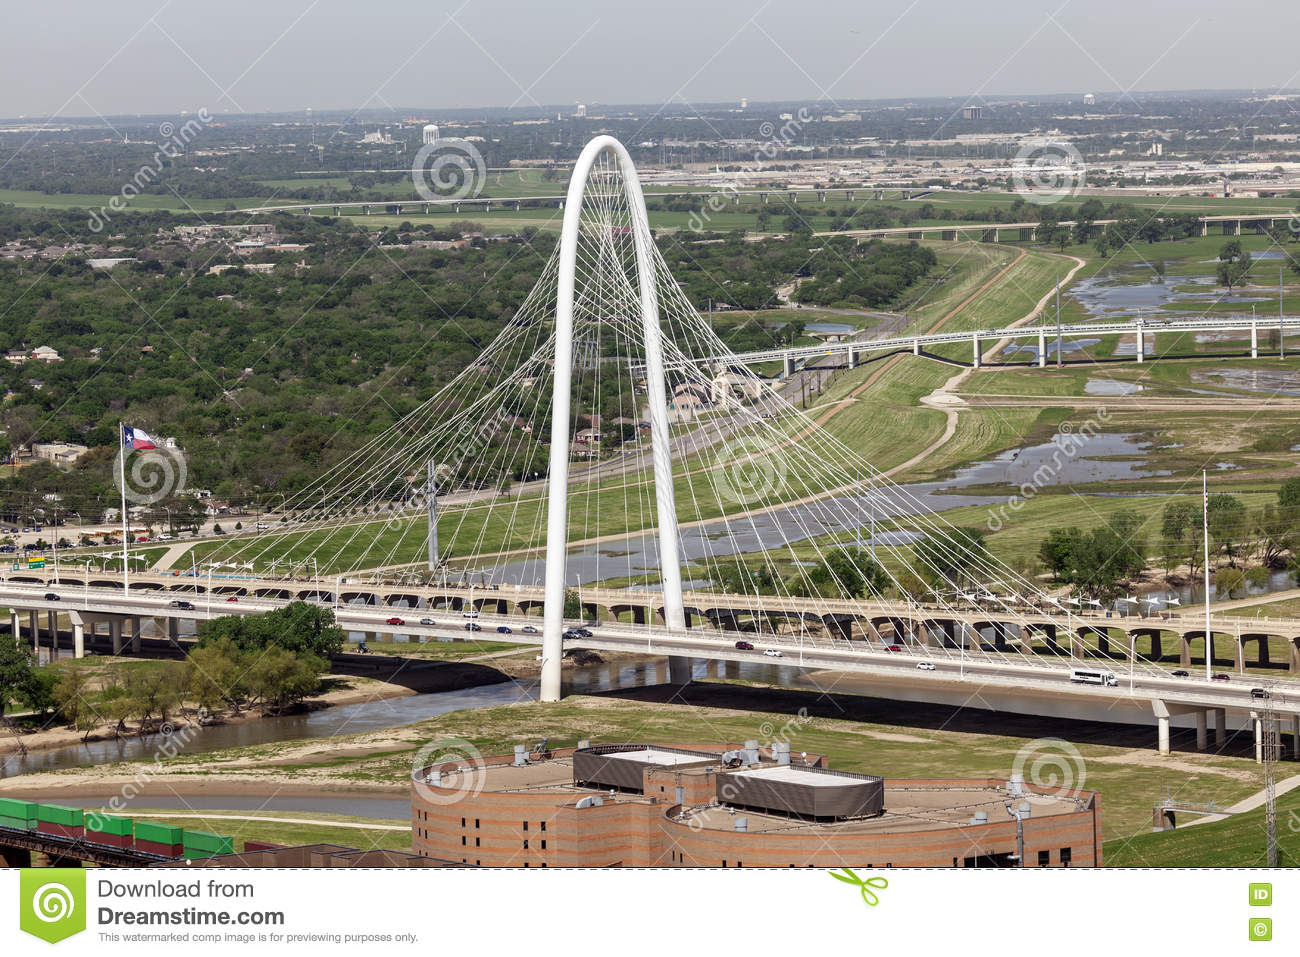 Margaret Hunt Bridge en Dallas, Estados Unidos